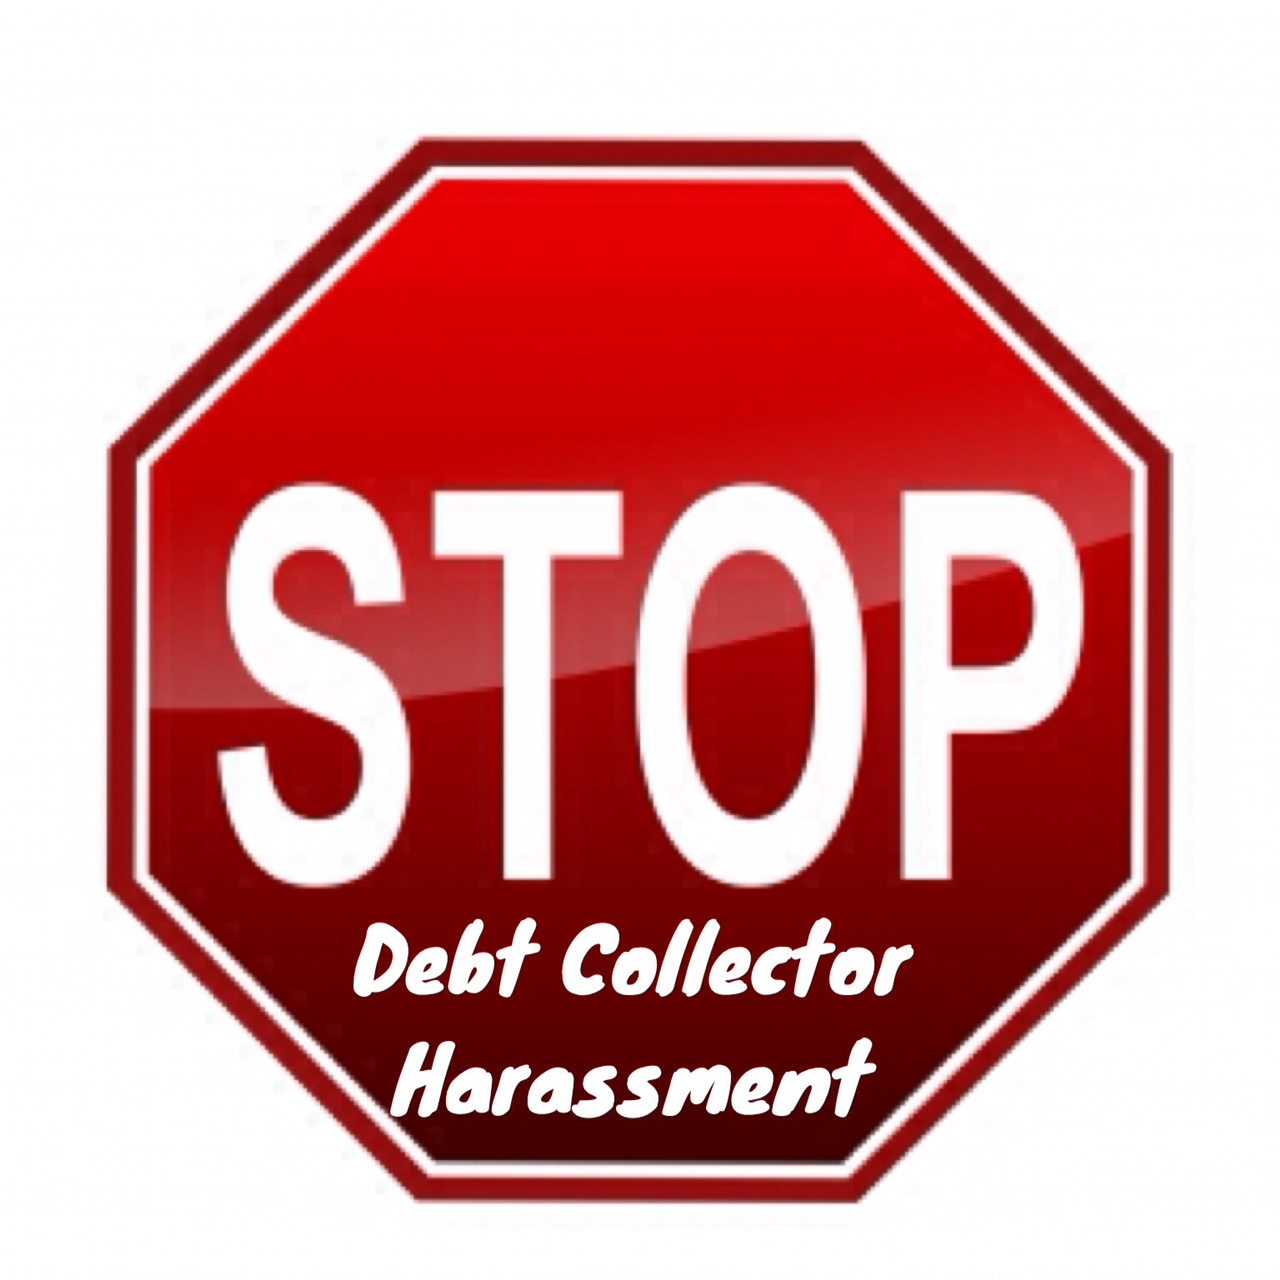 Debt Collection Calls